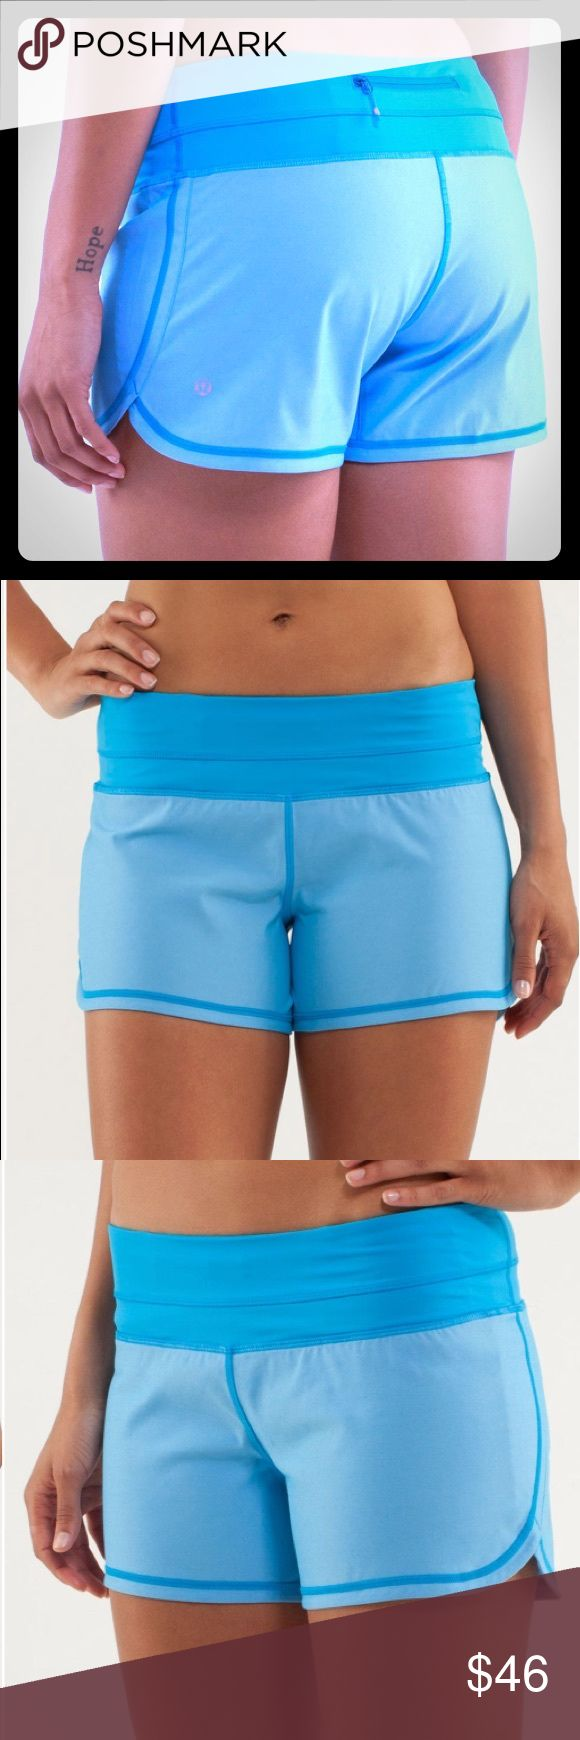 Lululemon Groovy Run Shorts: Beach Blanket Blue EUC Lululemon Groovy Run Shorts In Beach Blanket Blue. Very minor pilling in the inner thigh area as seen in the last photo. First three photos are stock photos to demonstrate fit and features. lululemon athletica Shorts